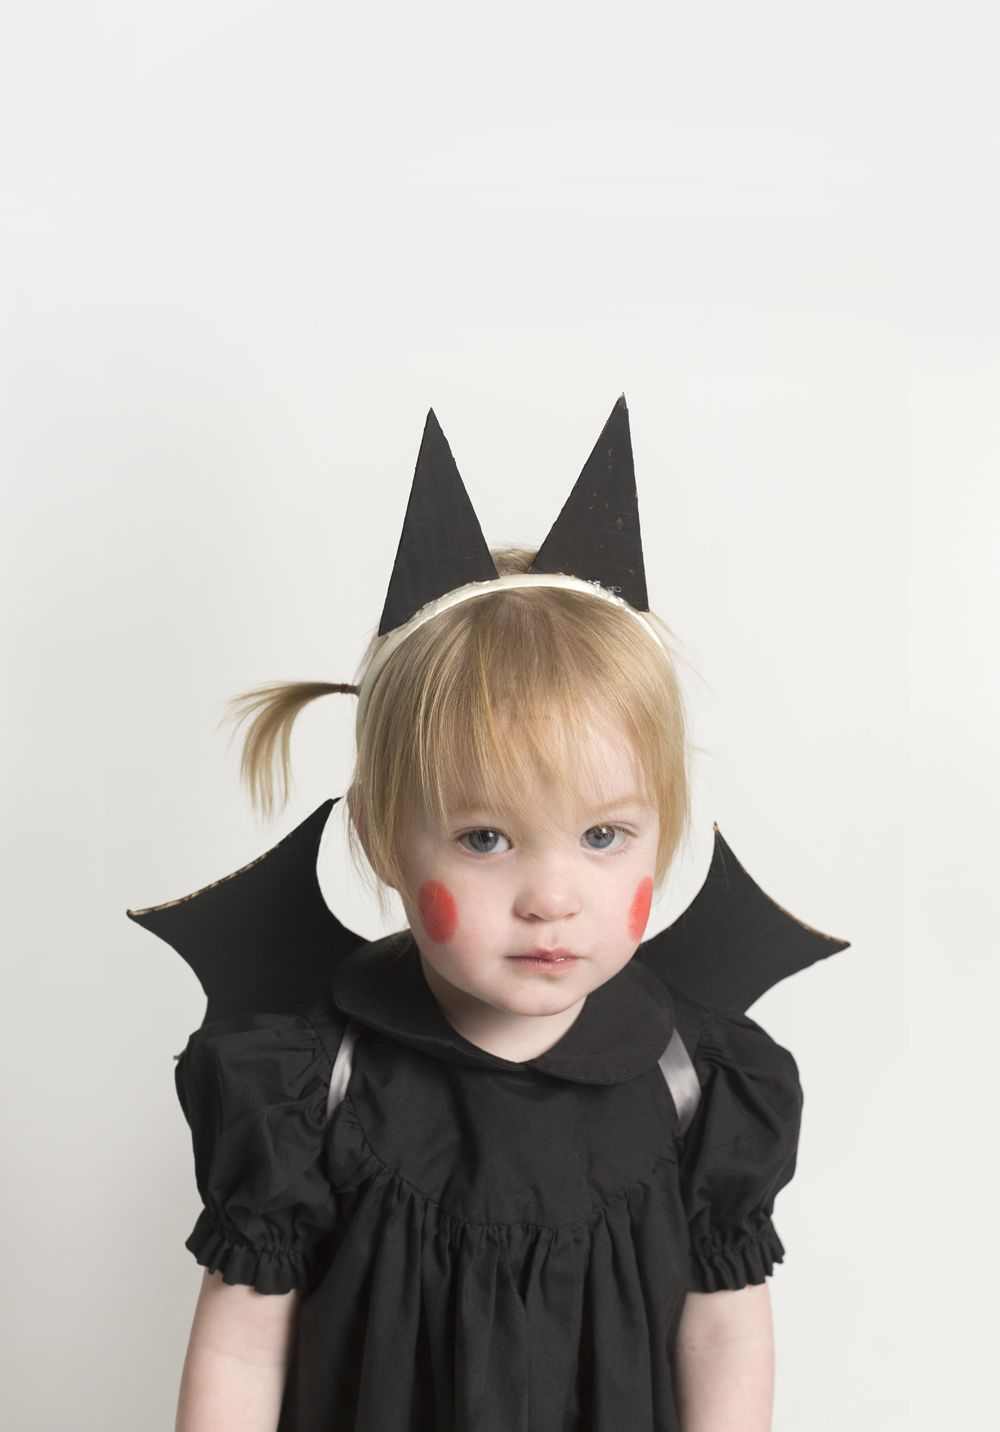 Baby Bat Costume with Cardboard Wings and Ears  sc 1 st  Pinterest & Baby Bat Costume with Cardboard Wings and Ears (Mermag) | Pinterest ...